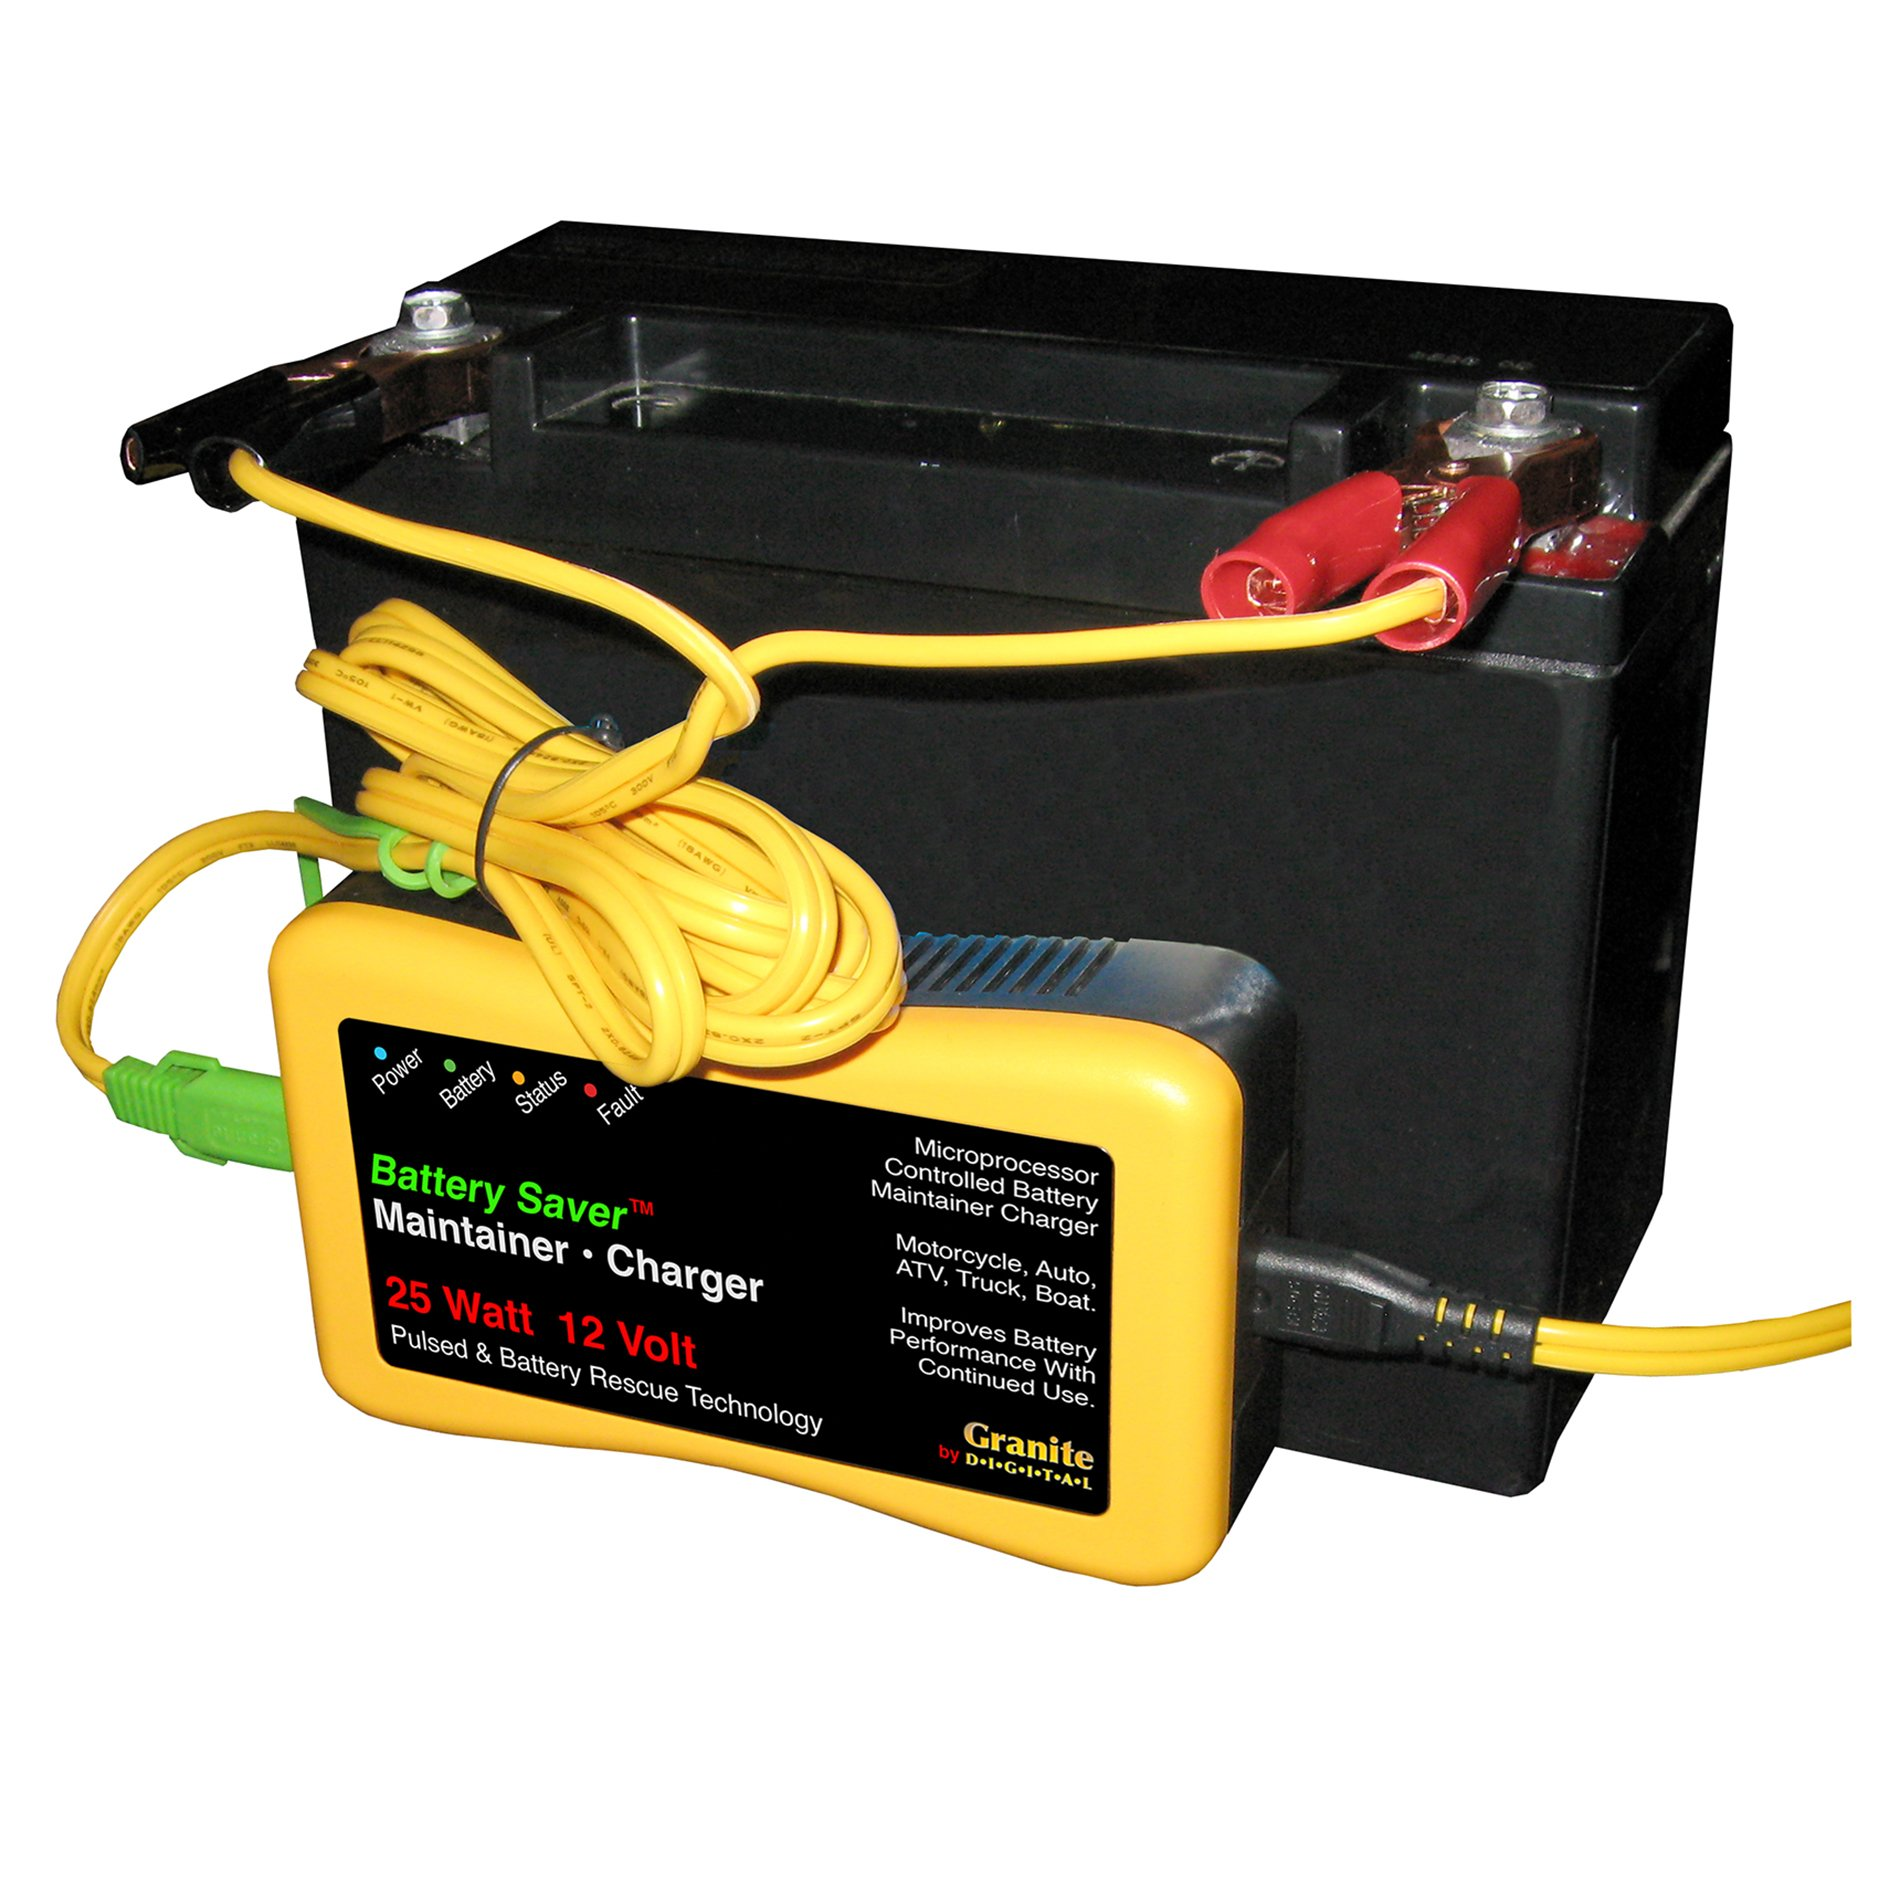 Save A Battery 3015 12 Volt/25 Watt Battery Saver/Maintainer and Battery Rescue by Battery Saver (Image #6)